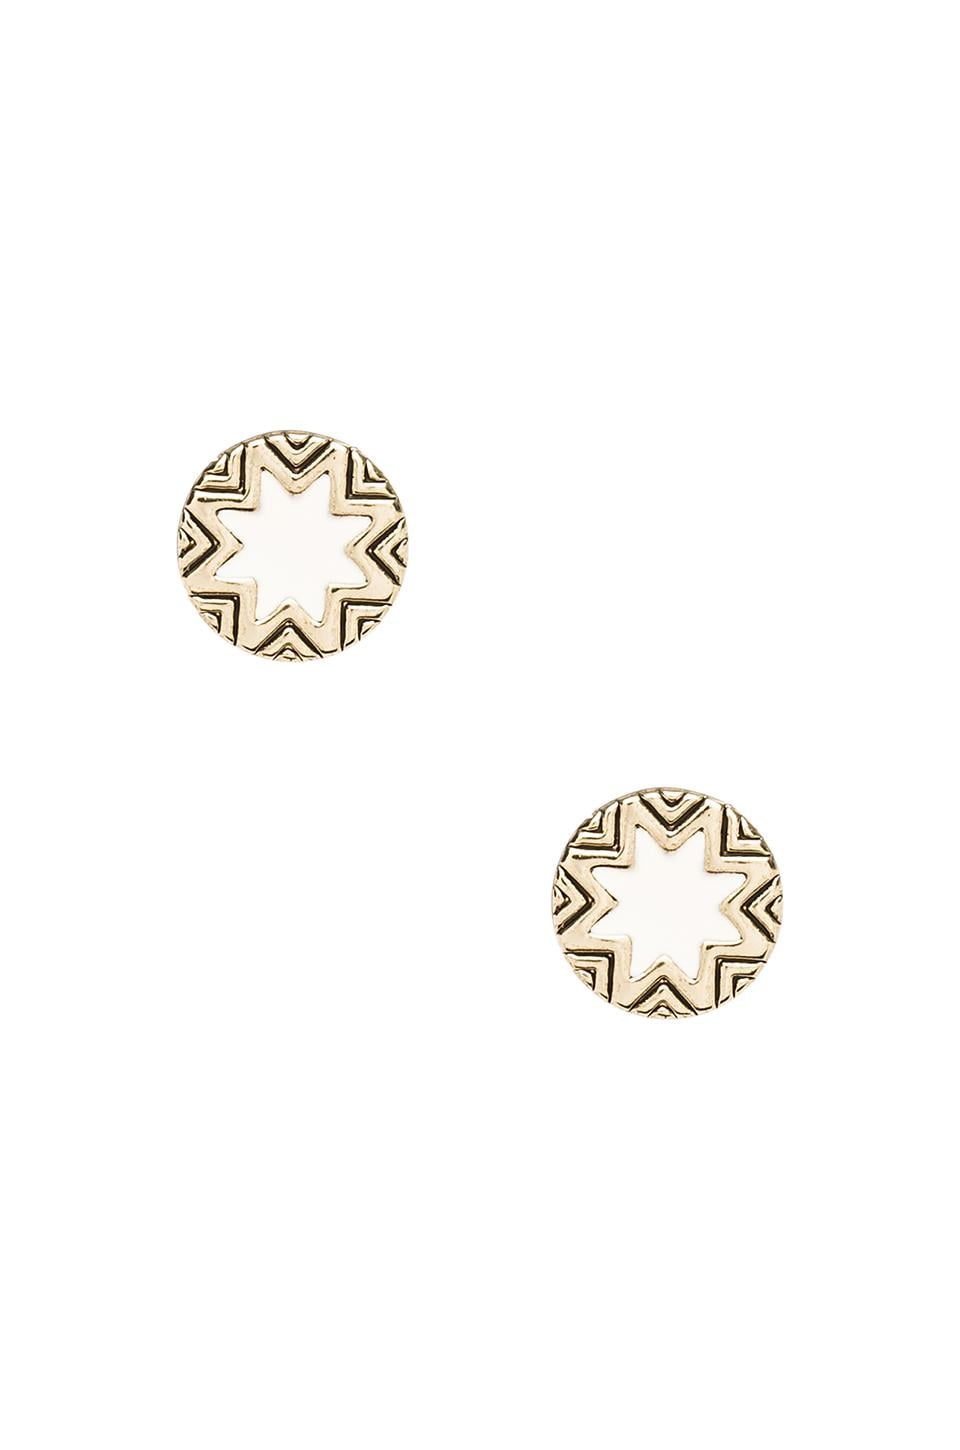 House of Harlow 1960 House of Harlow Mini Sunburst Stud Earrings in Gold Tone Cream